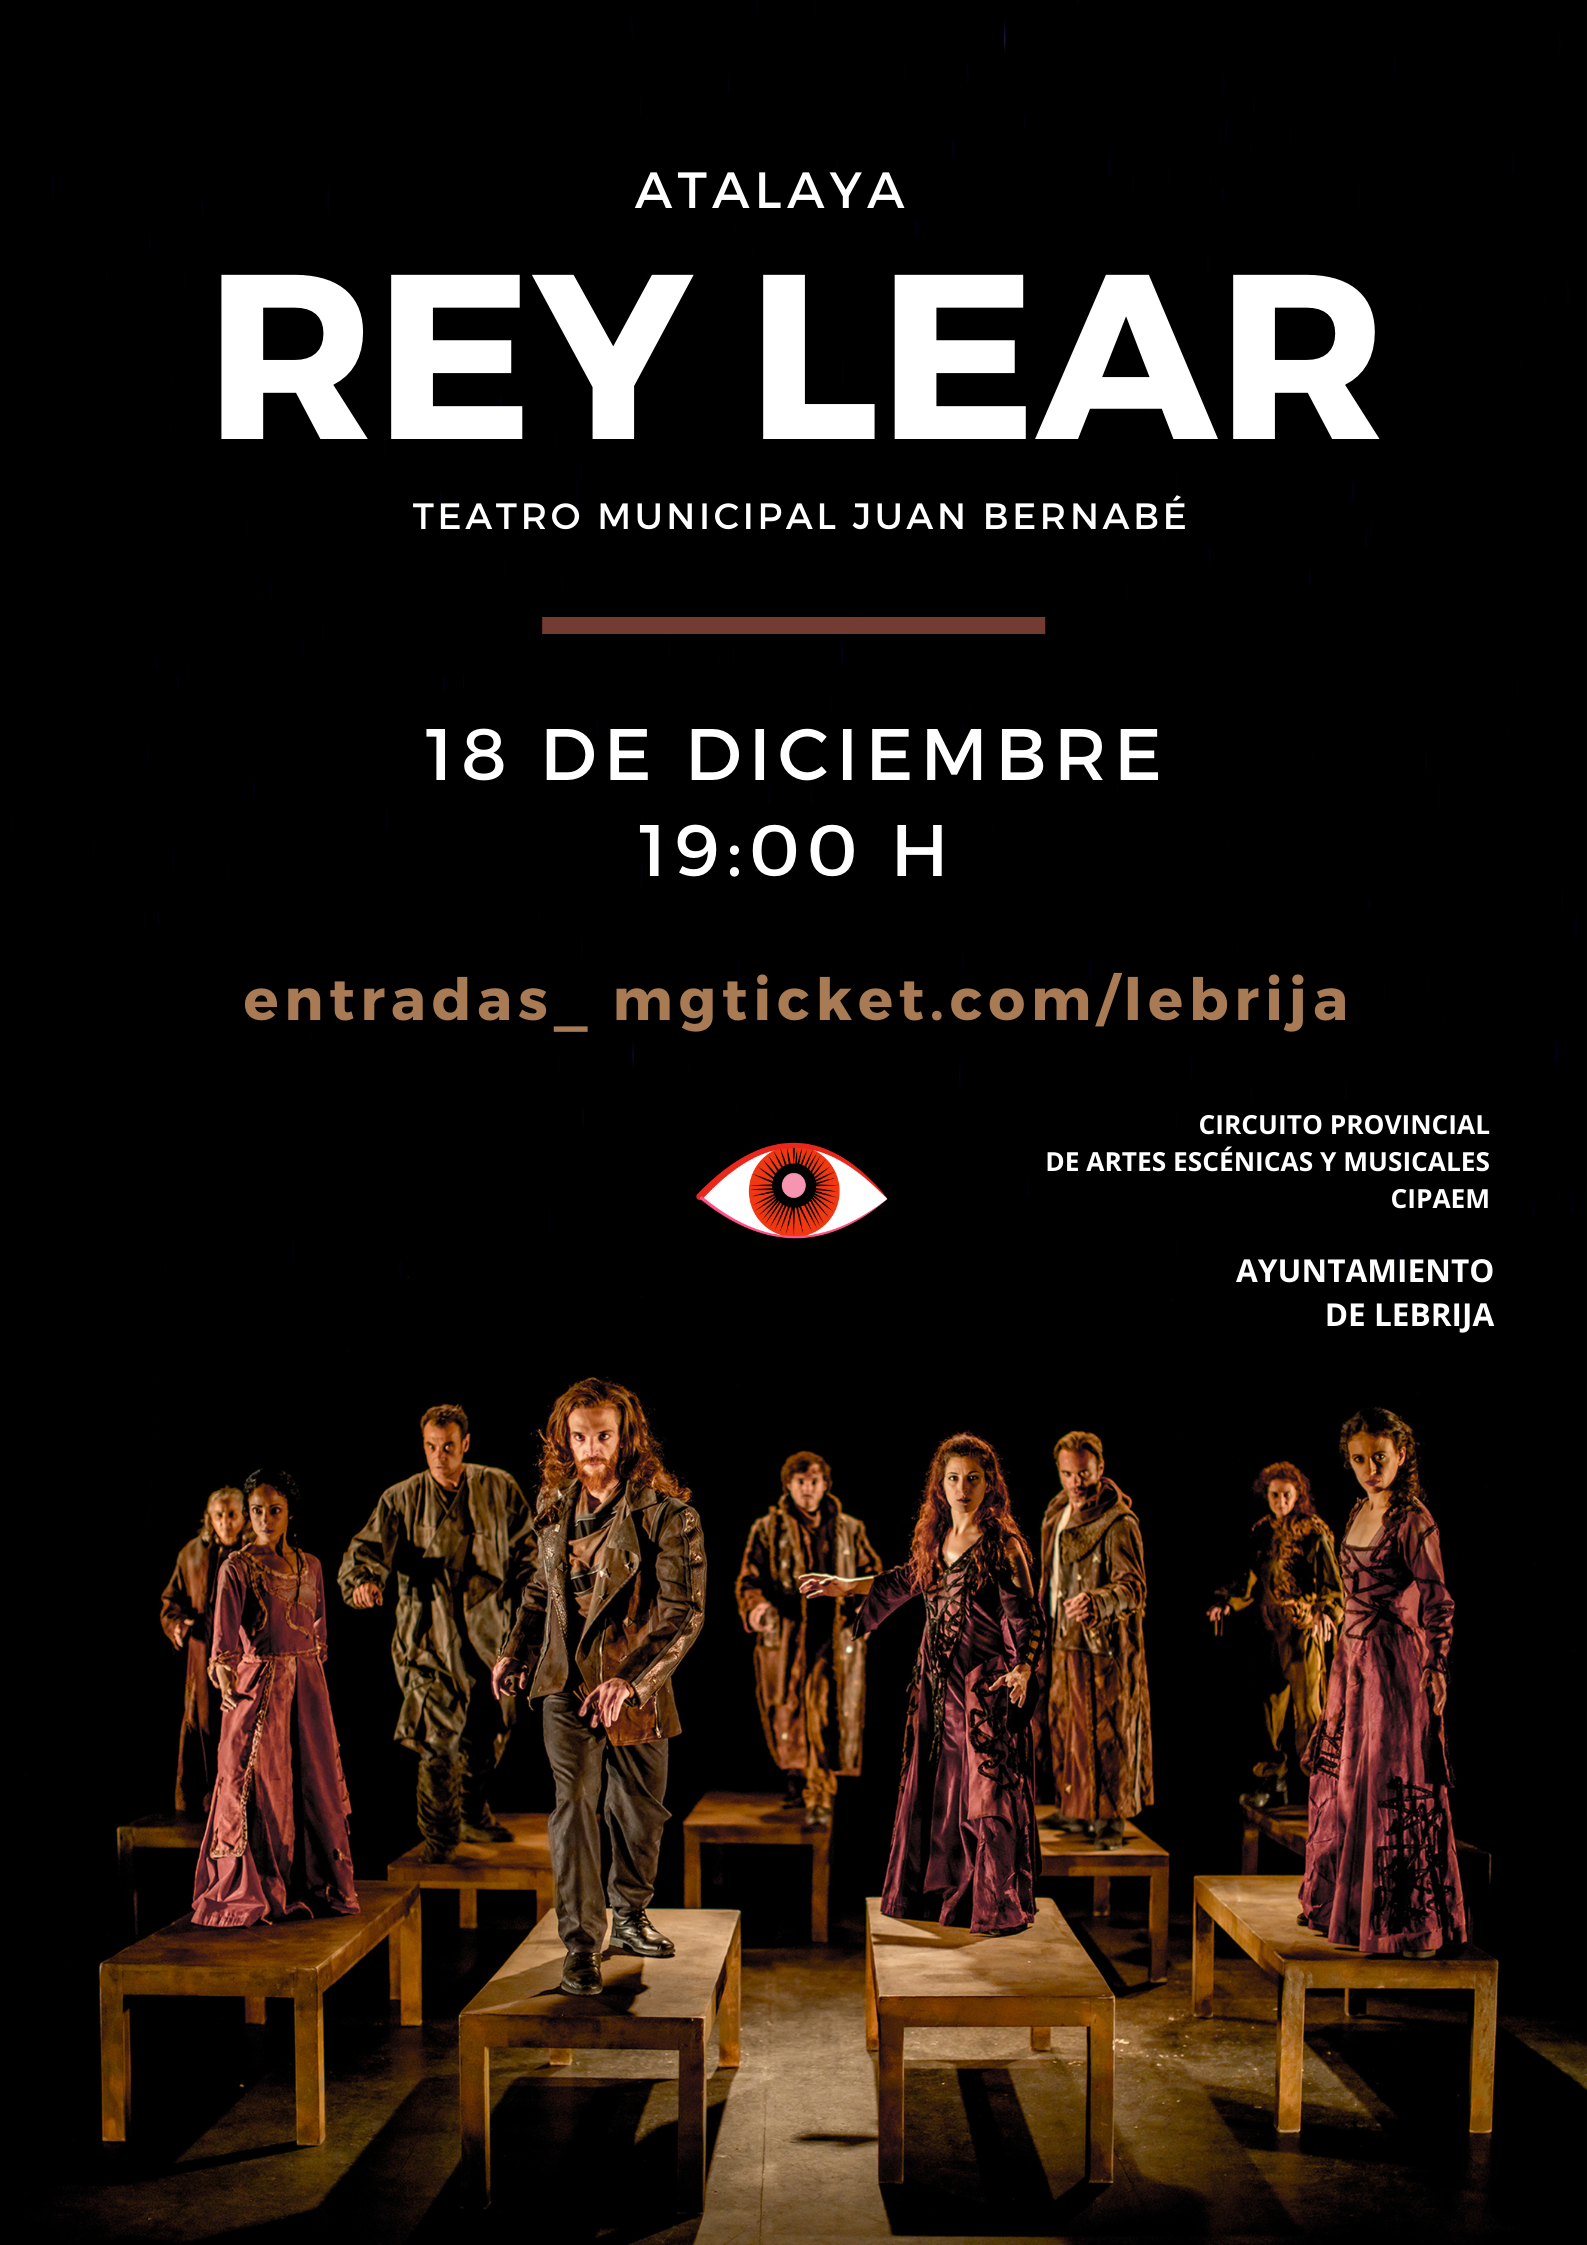 REY LEAR 18 DIC PNG